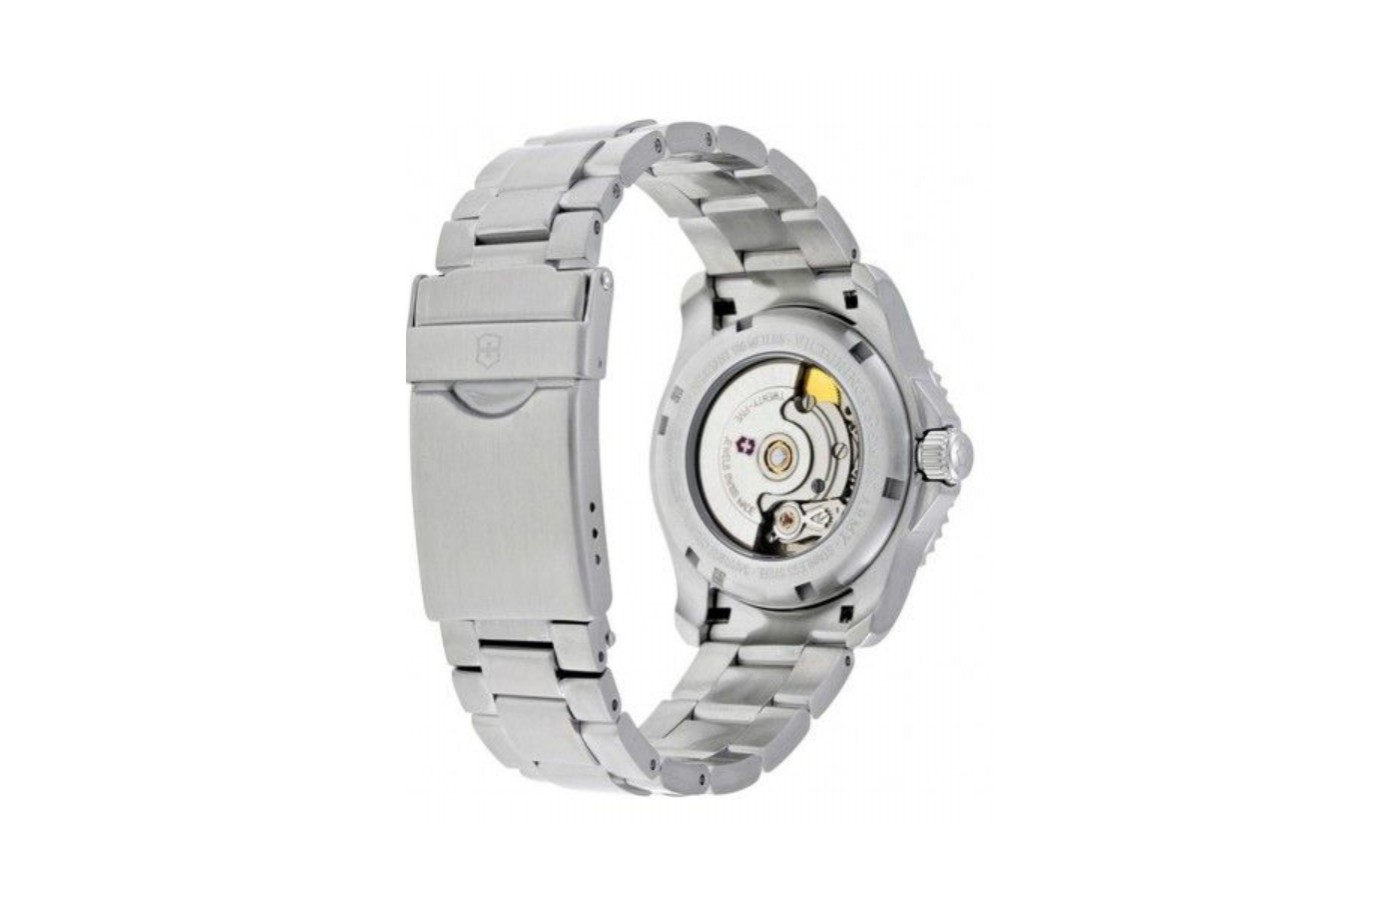 The watch is powered by either manually winding or by motion through your movements.